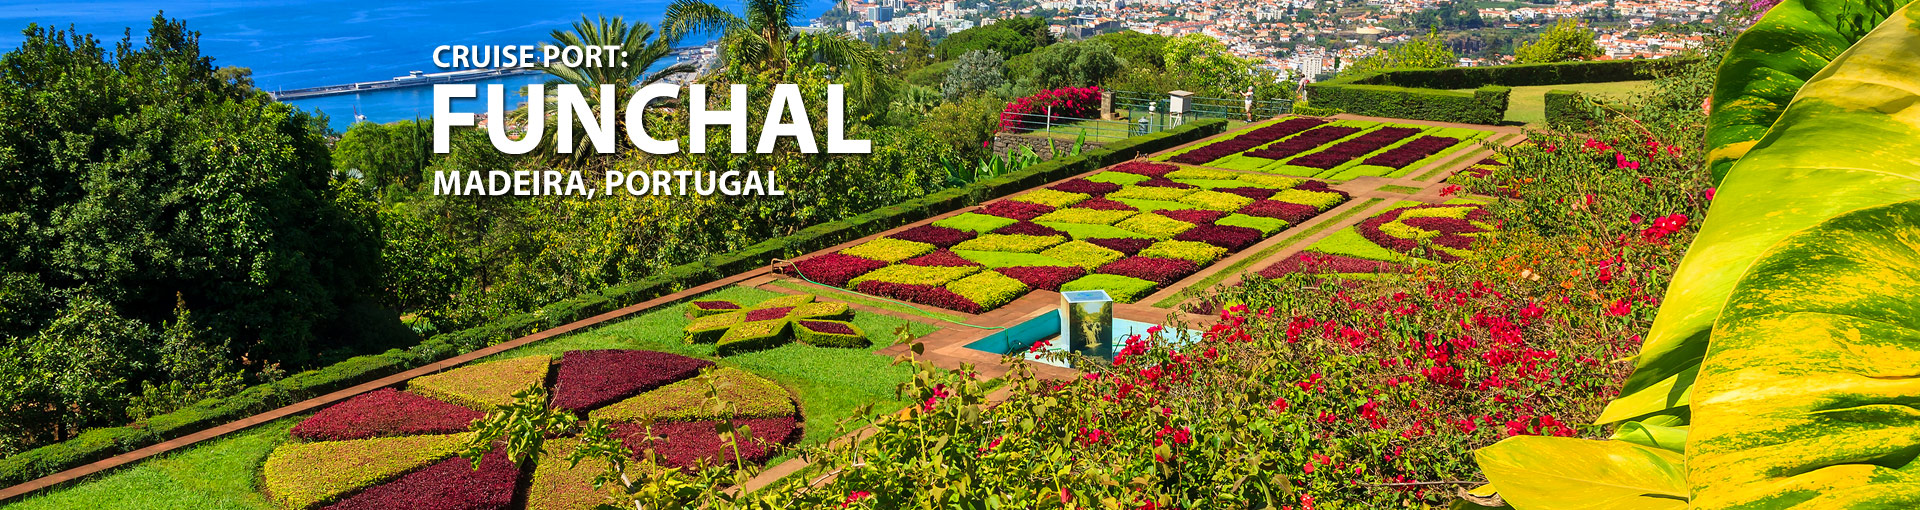 Cruises from Funchal, Madeira, Portugal